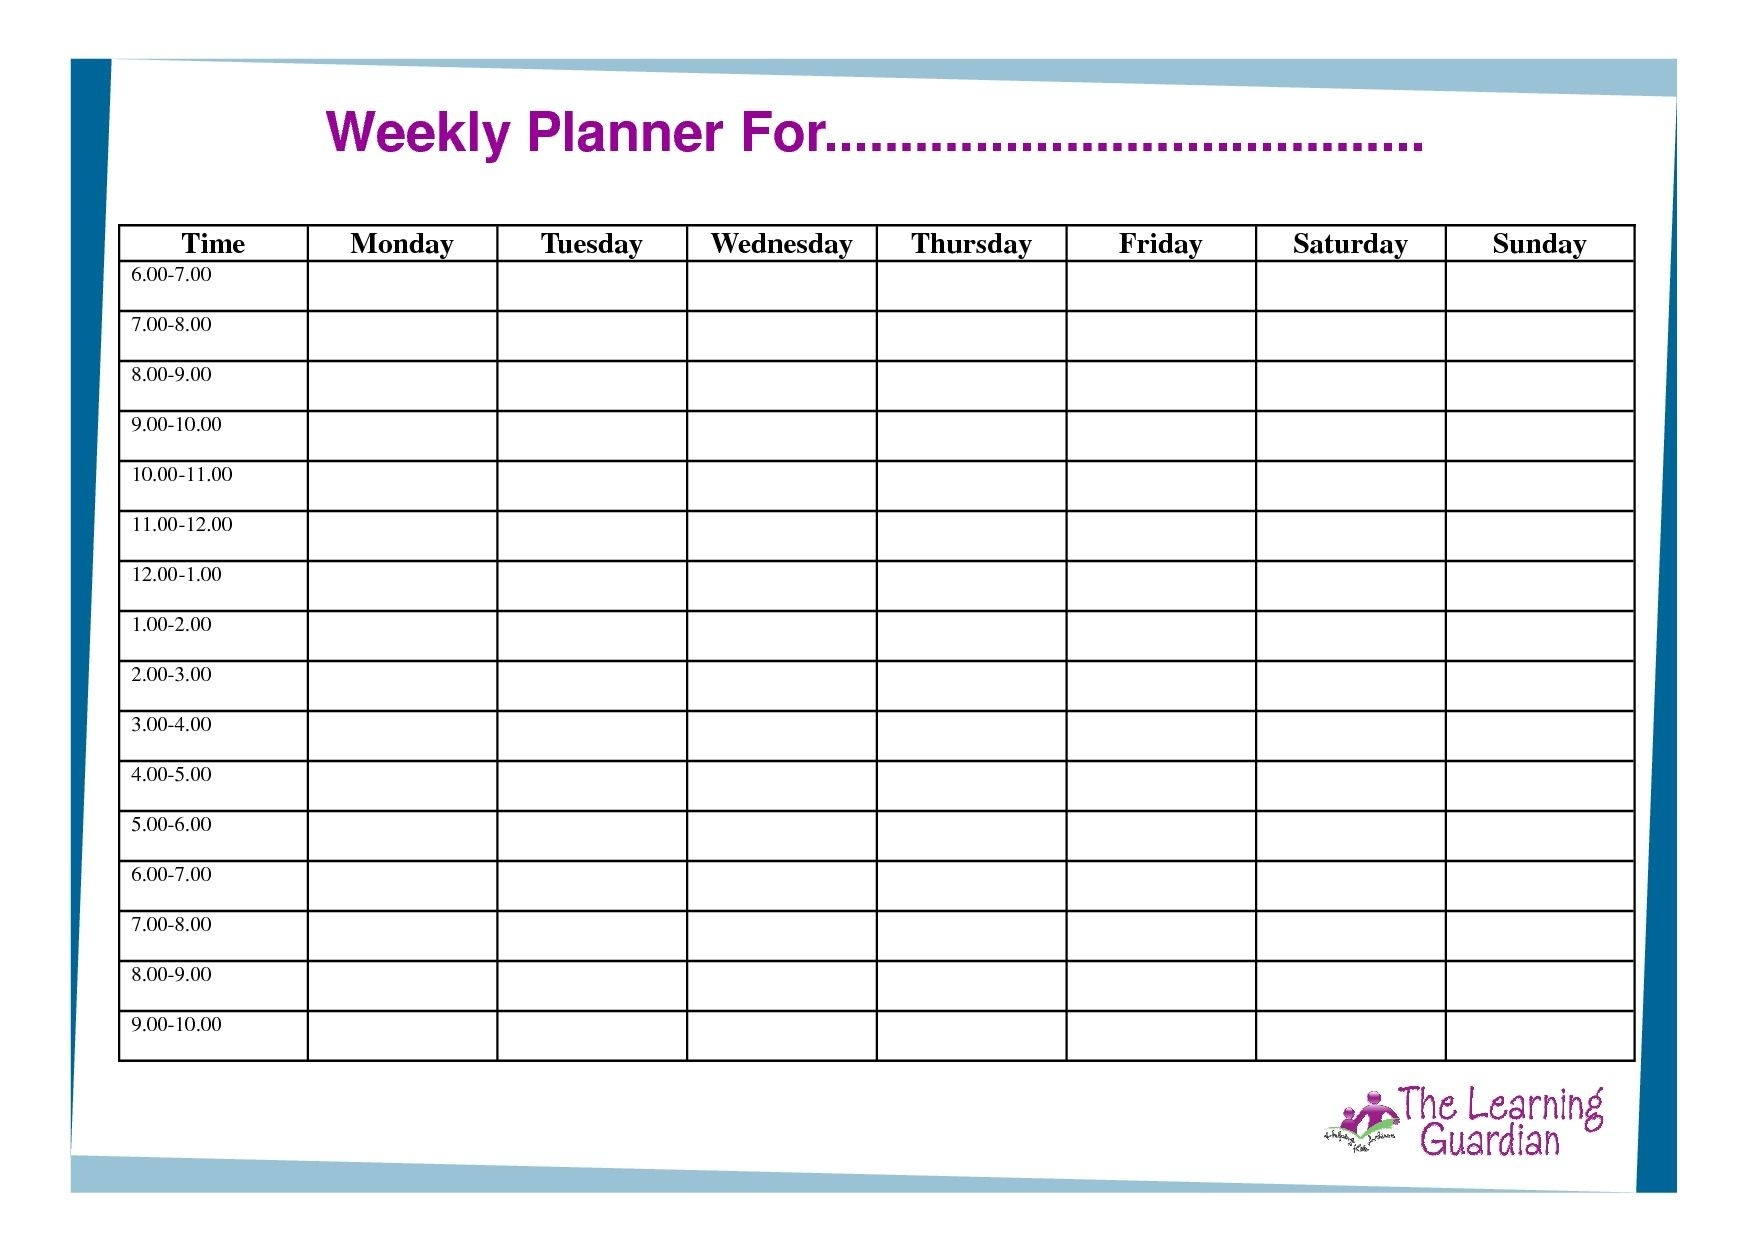 Free Printable Weekly Calendar Templates Planner For Time-Calender Templates Printable Hourly